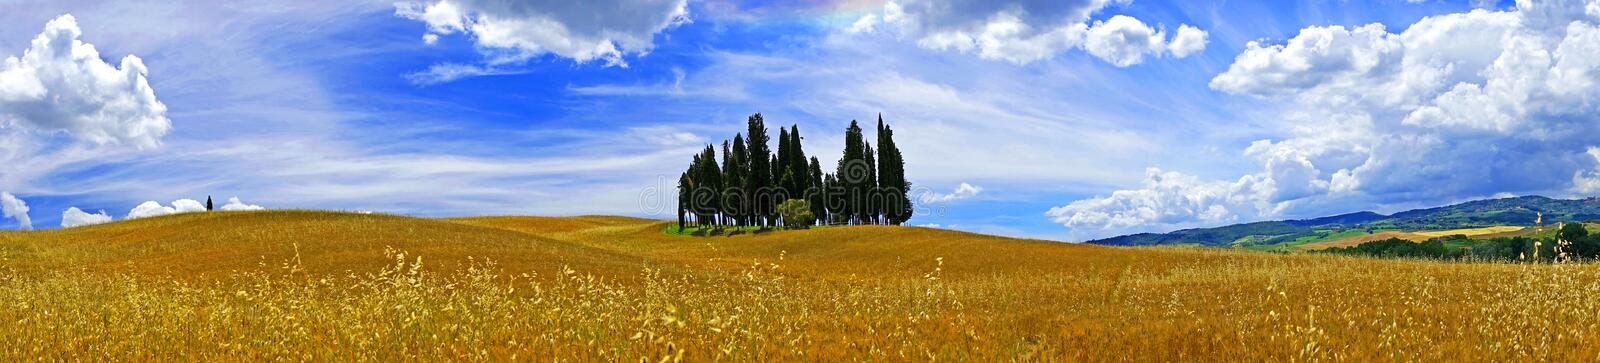 Tuscany landscape. Panorama, cypress trees oat fields royalty free stock photos